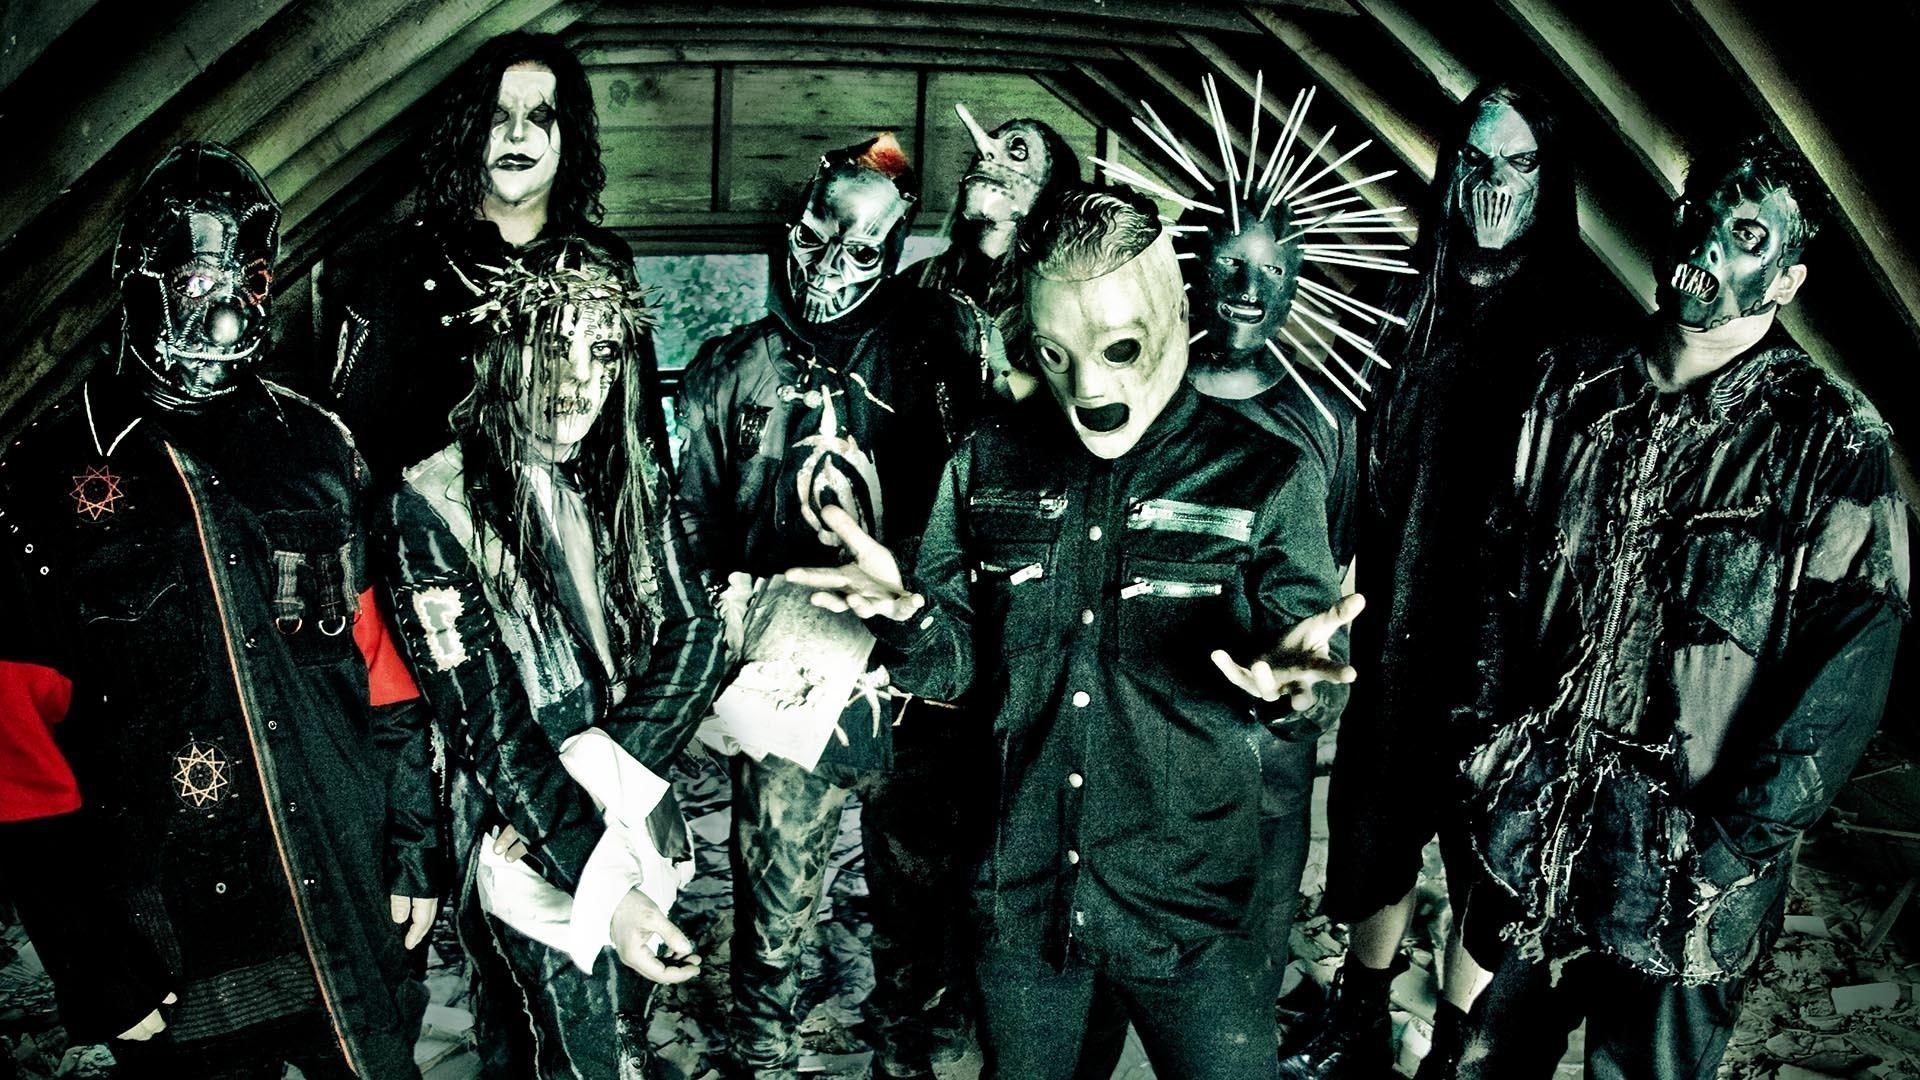 slipknot wallpapers for mac desktop Slipknot band